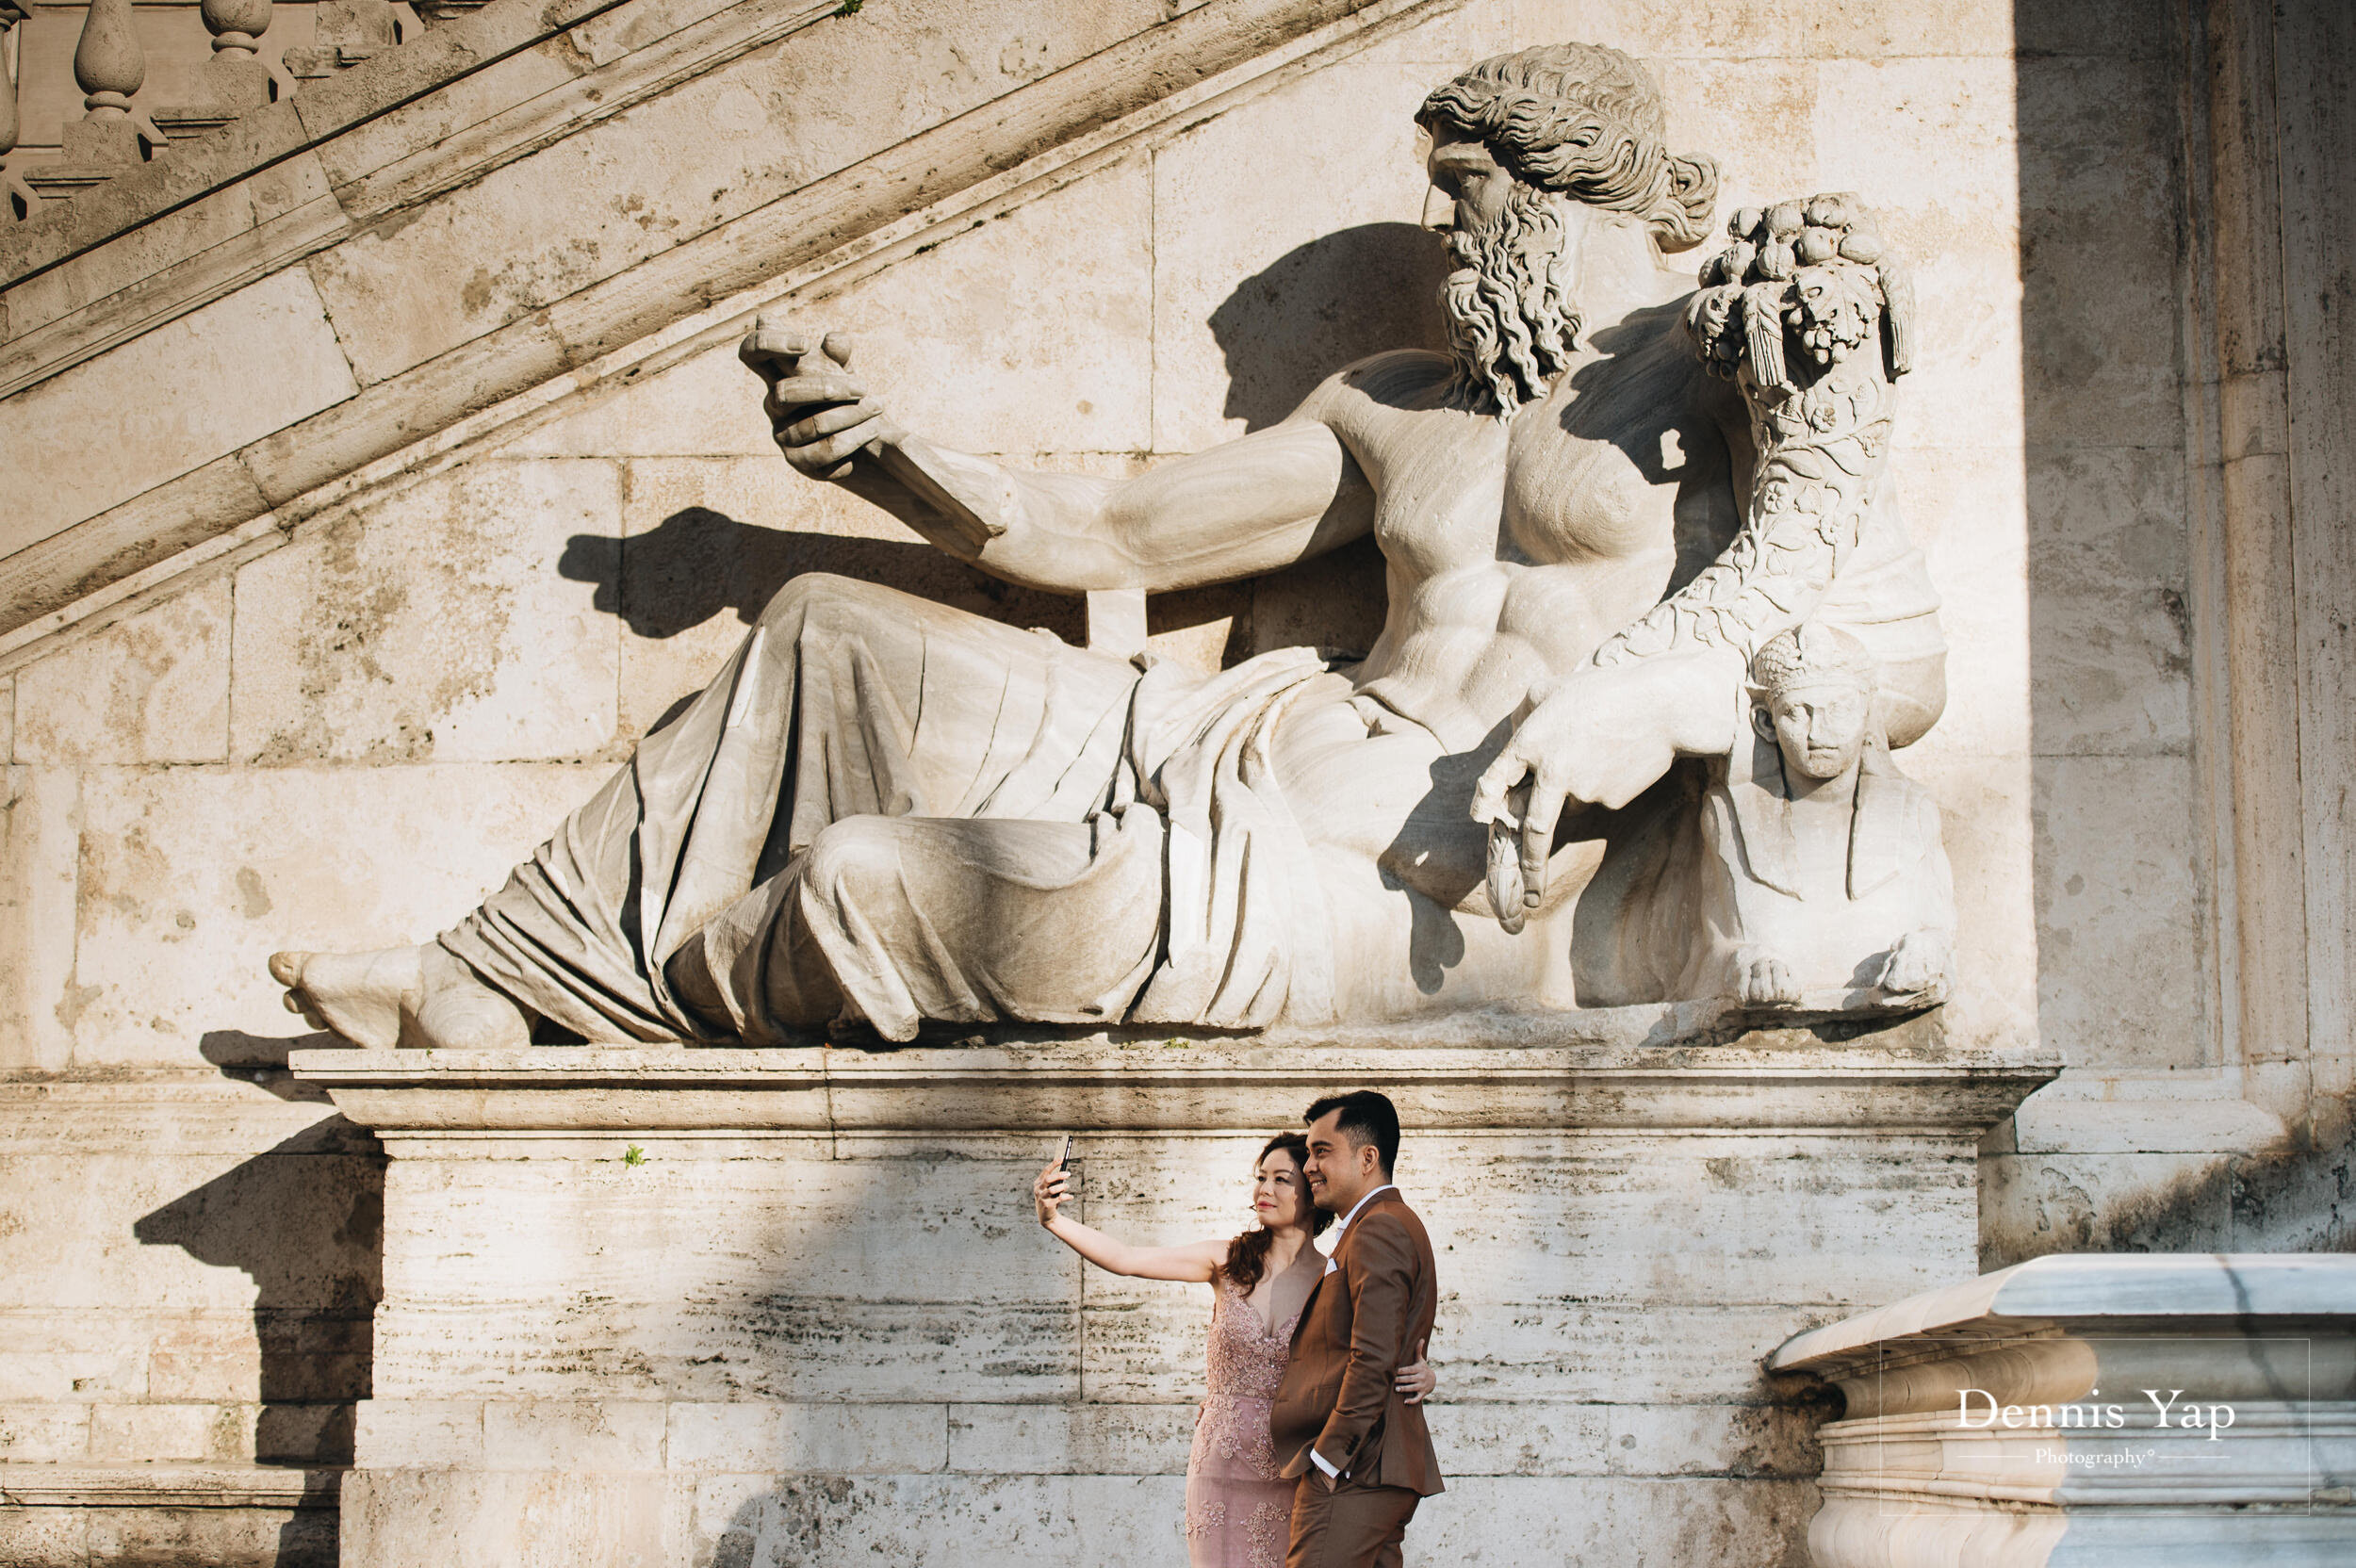 benny alicia pre wedding rome dennis yap photography classic beloved style candid natural-122.jpg